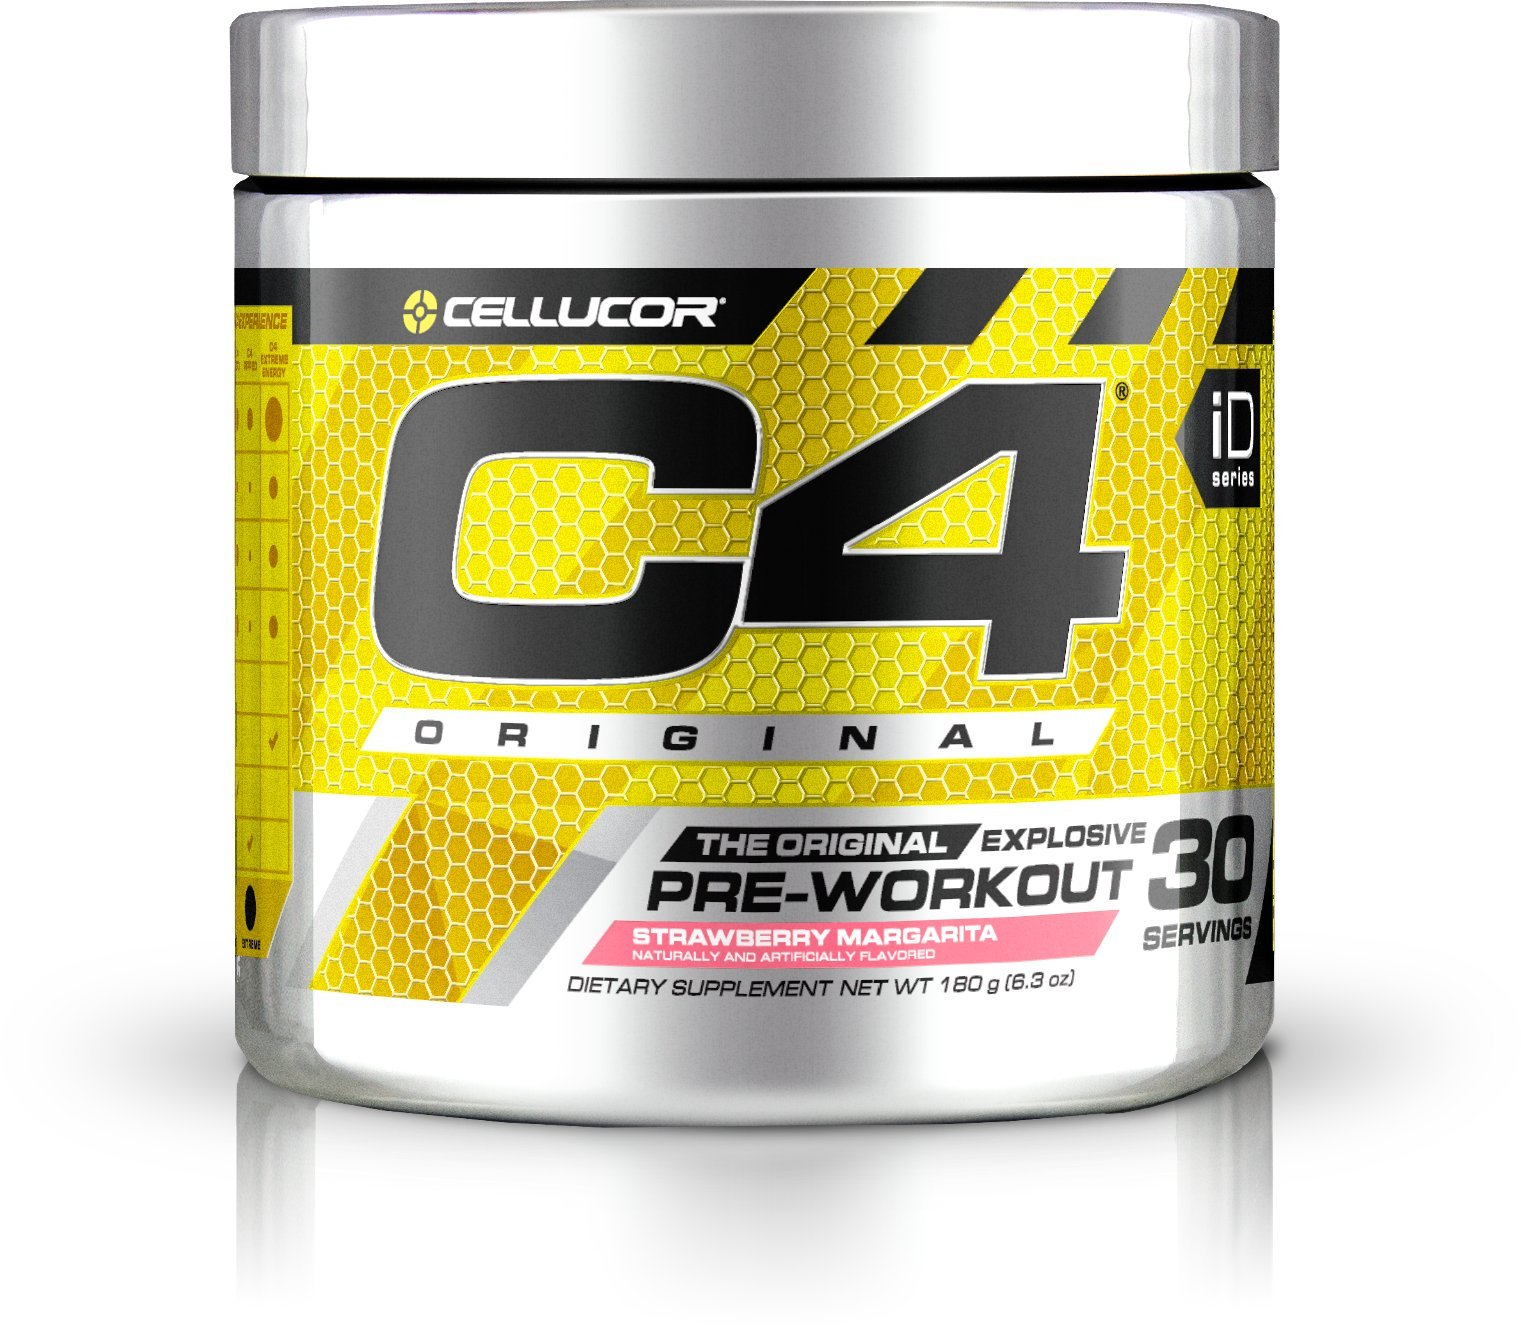 Cellucor C4 Original Pre Workout Powder Energy Drink w/ Creatine, Nitric Oxide & Beta Alanine, Strawberry Mrgarita, 30 Servings